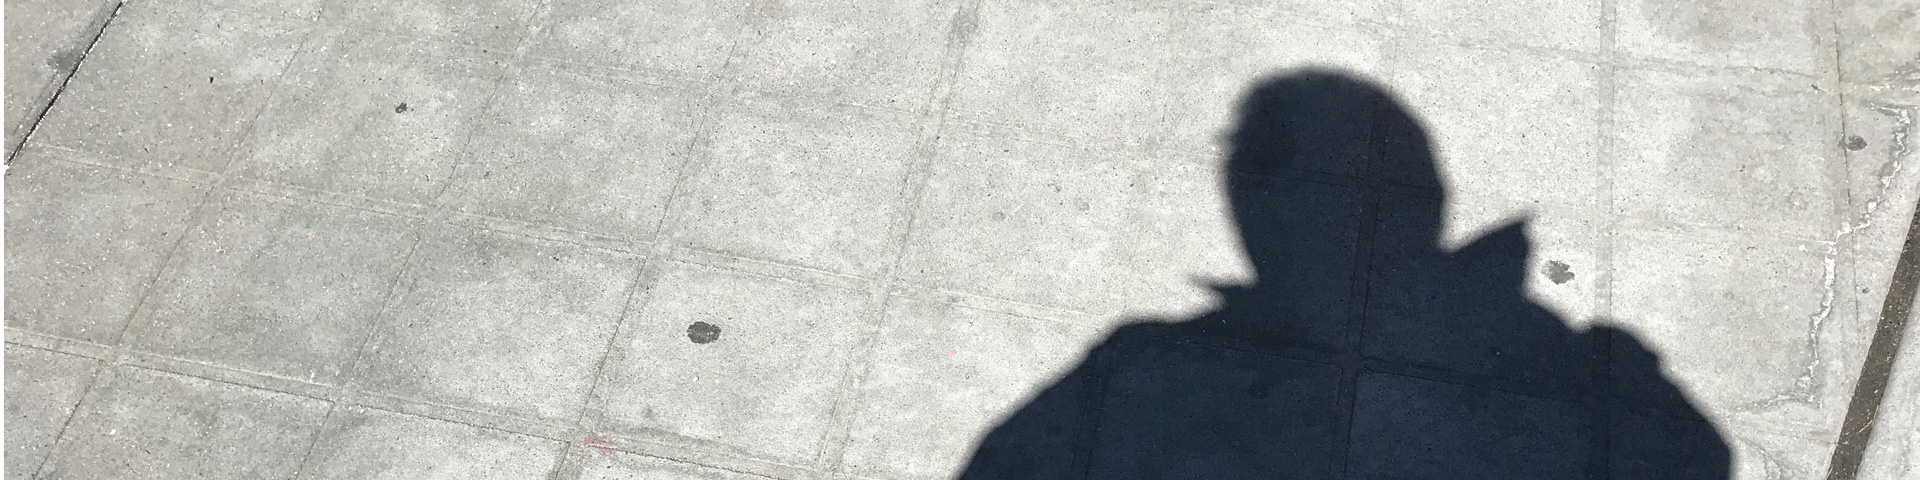 A man's shadow on a sidewalk